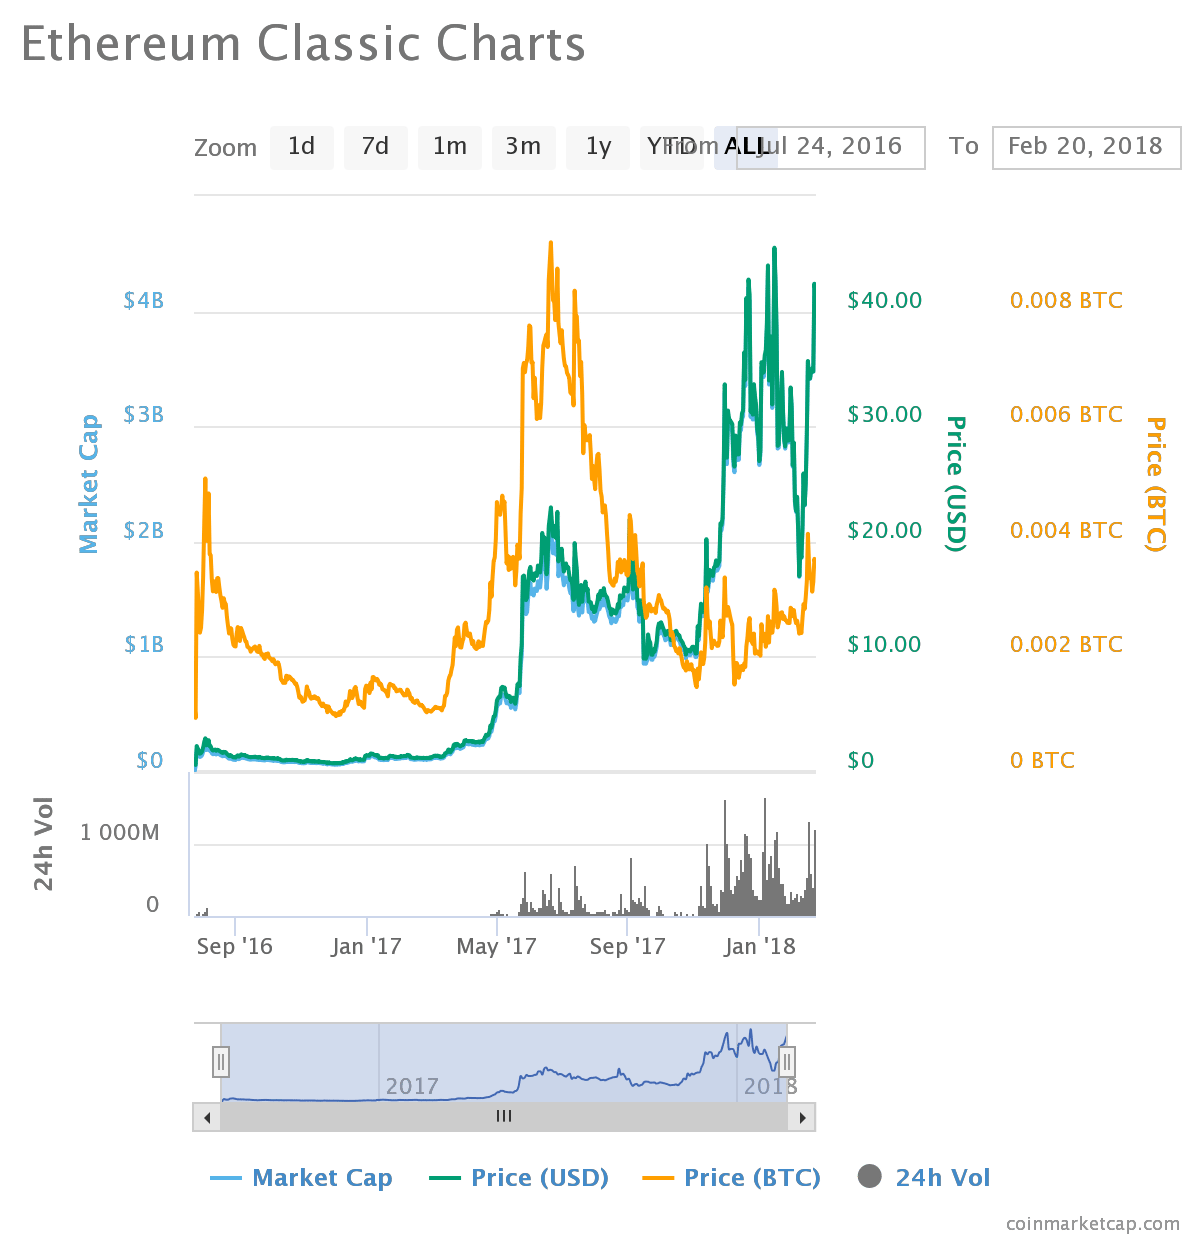 chart 4 - Ethereum Classic (ETH) All Time High Looms